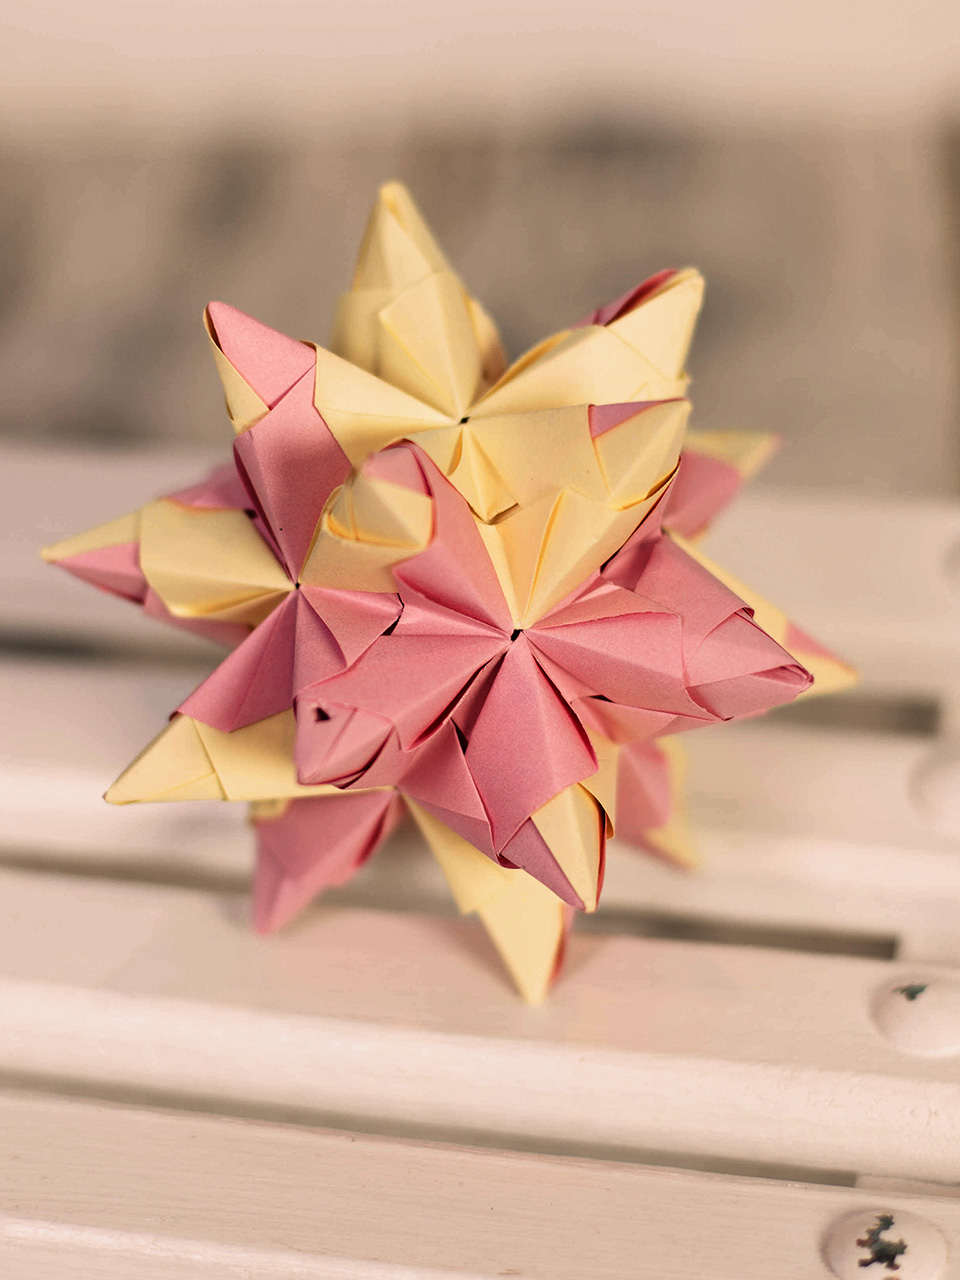 Simple Origami 3D Cherry Blossom Step by Step - Kids Can Make | 1280x960